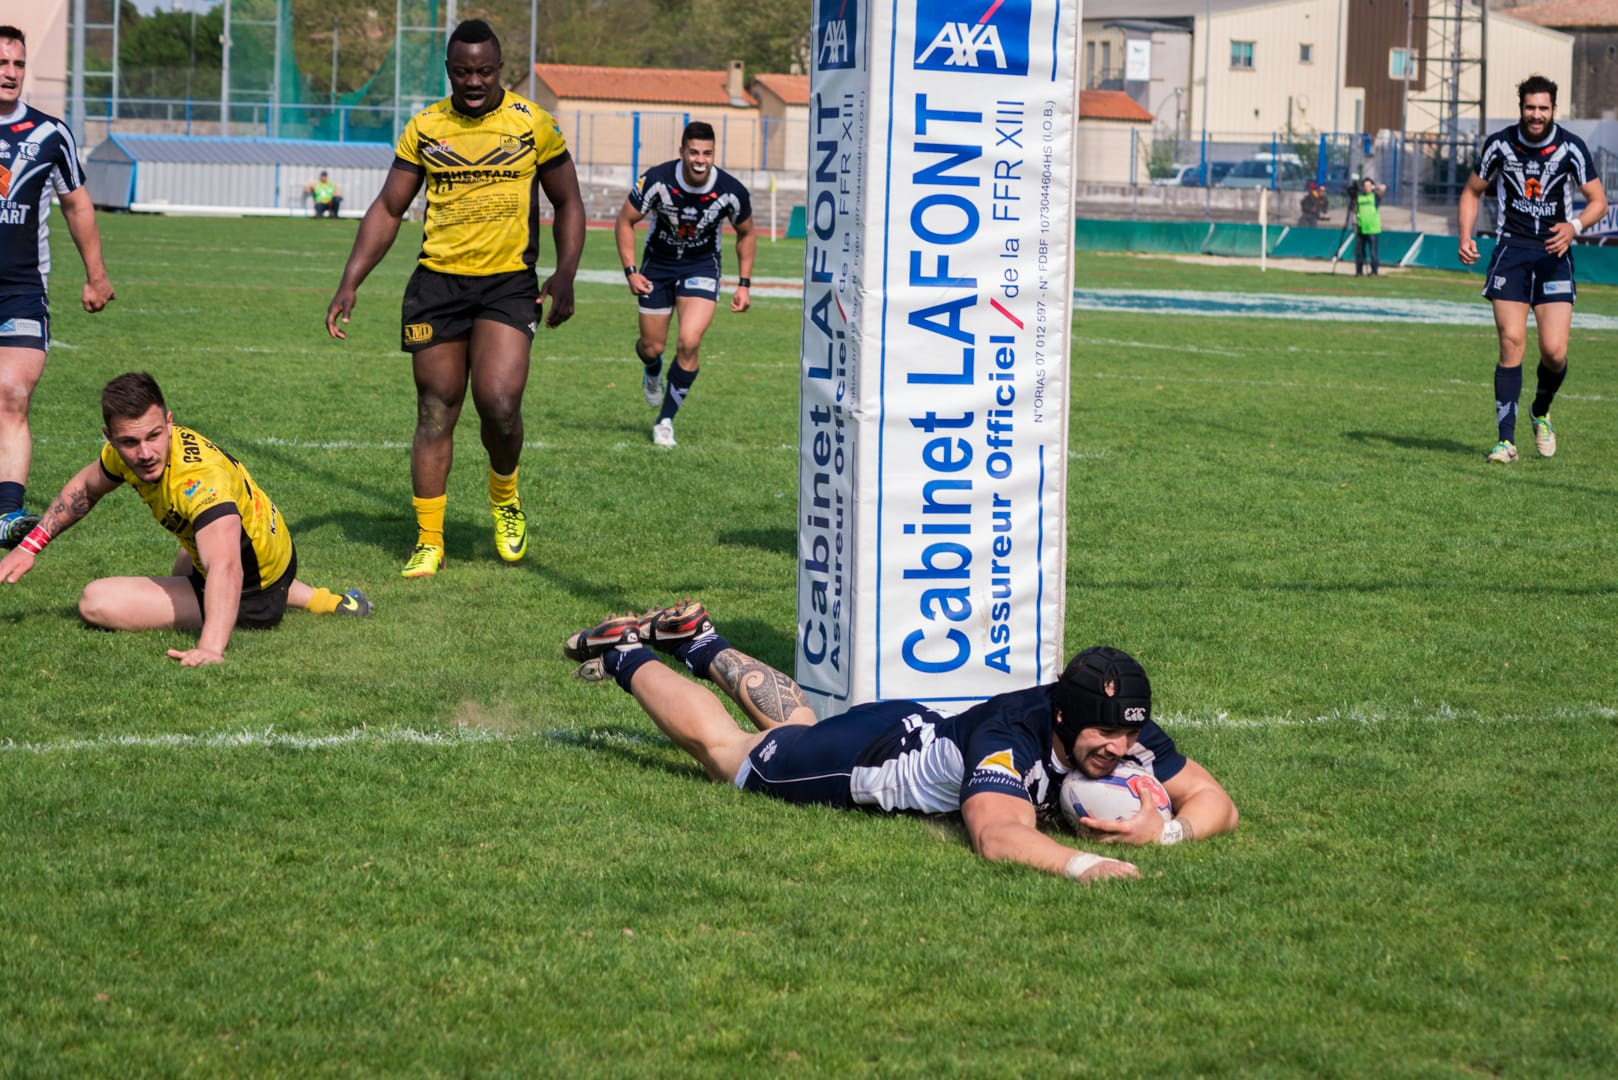 Photo de la finale de la coupe de France de Rugby à XIII : Toulouse - Carcassonne 18